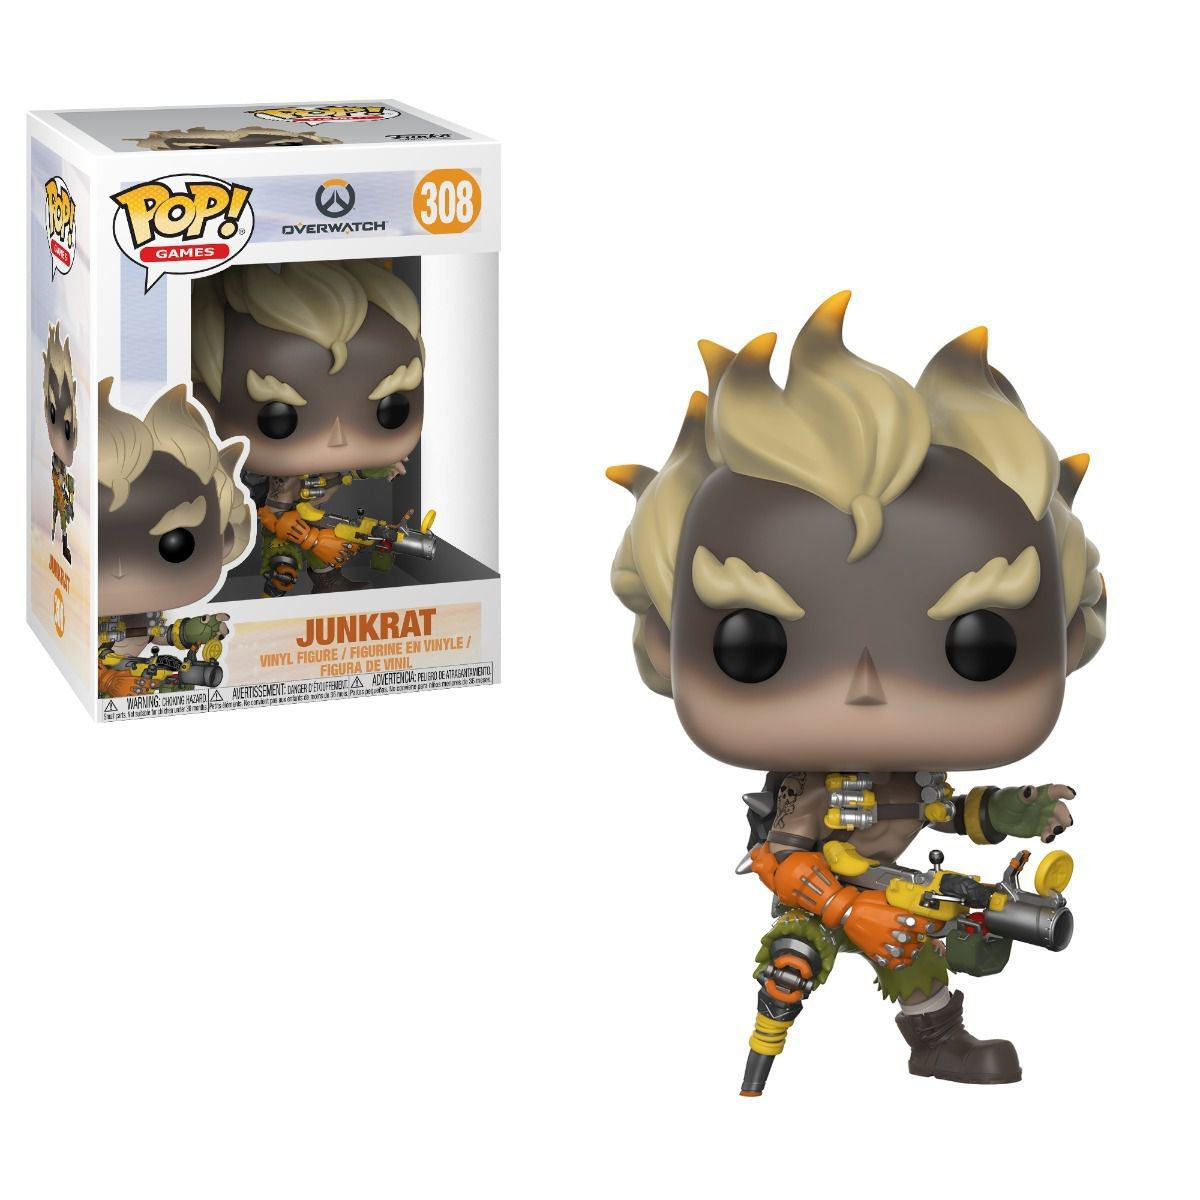 Funko Pop Games Overwatch - Junkrat